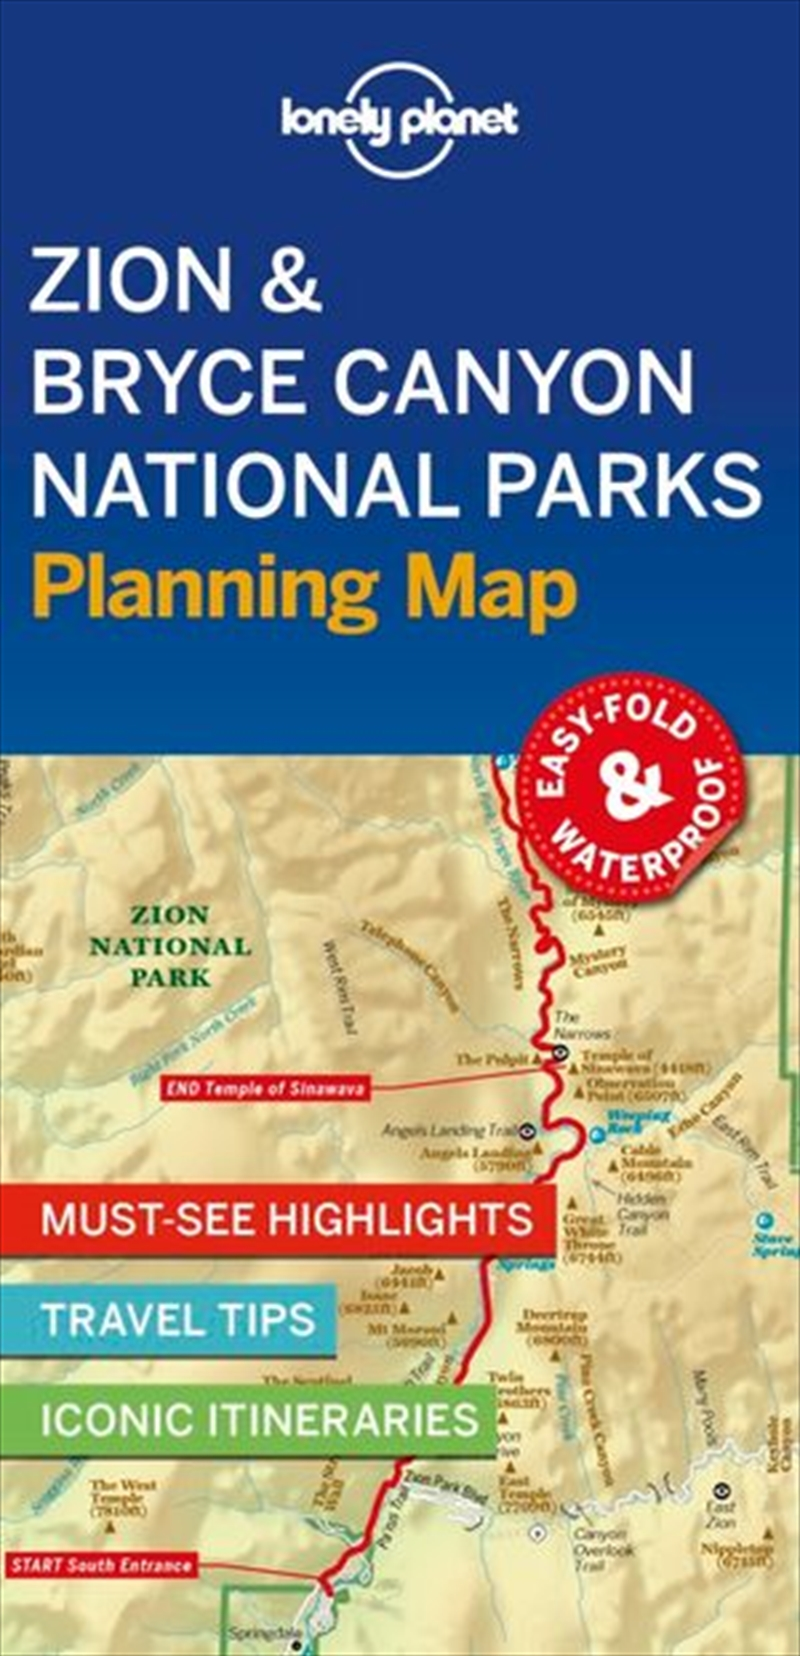 Lonely Planet Travel Guide - 1st Edition Zion & Bryce Canyon National Parks Planning Map | Sheet Map